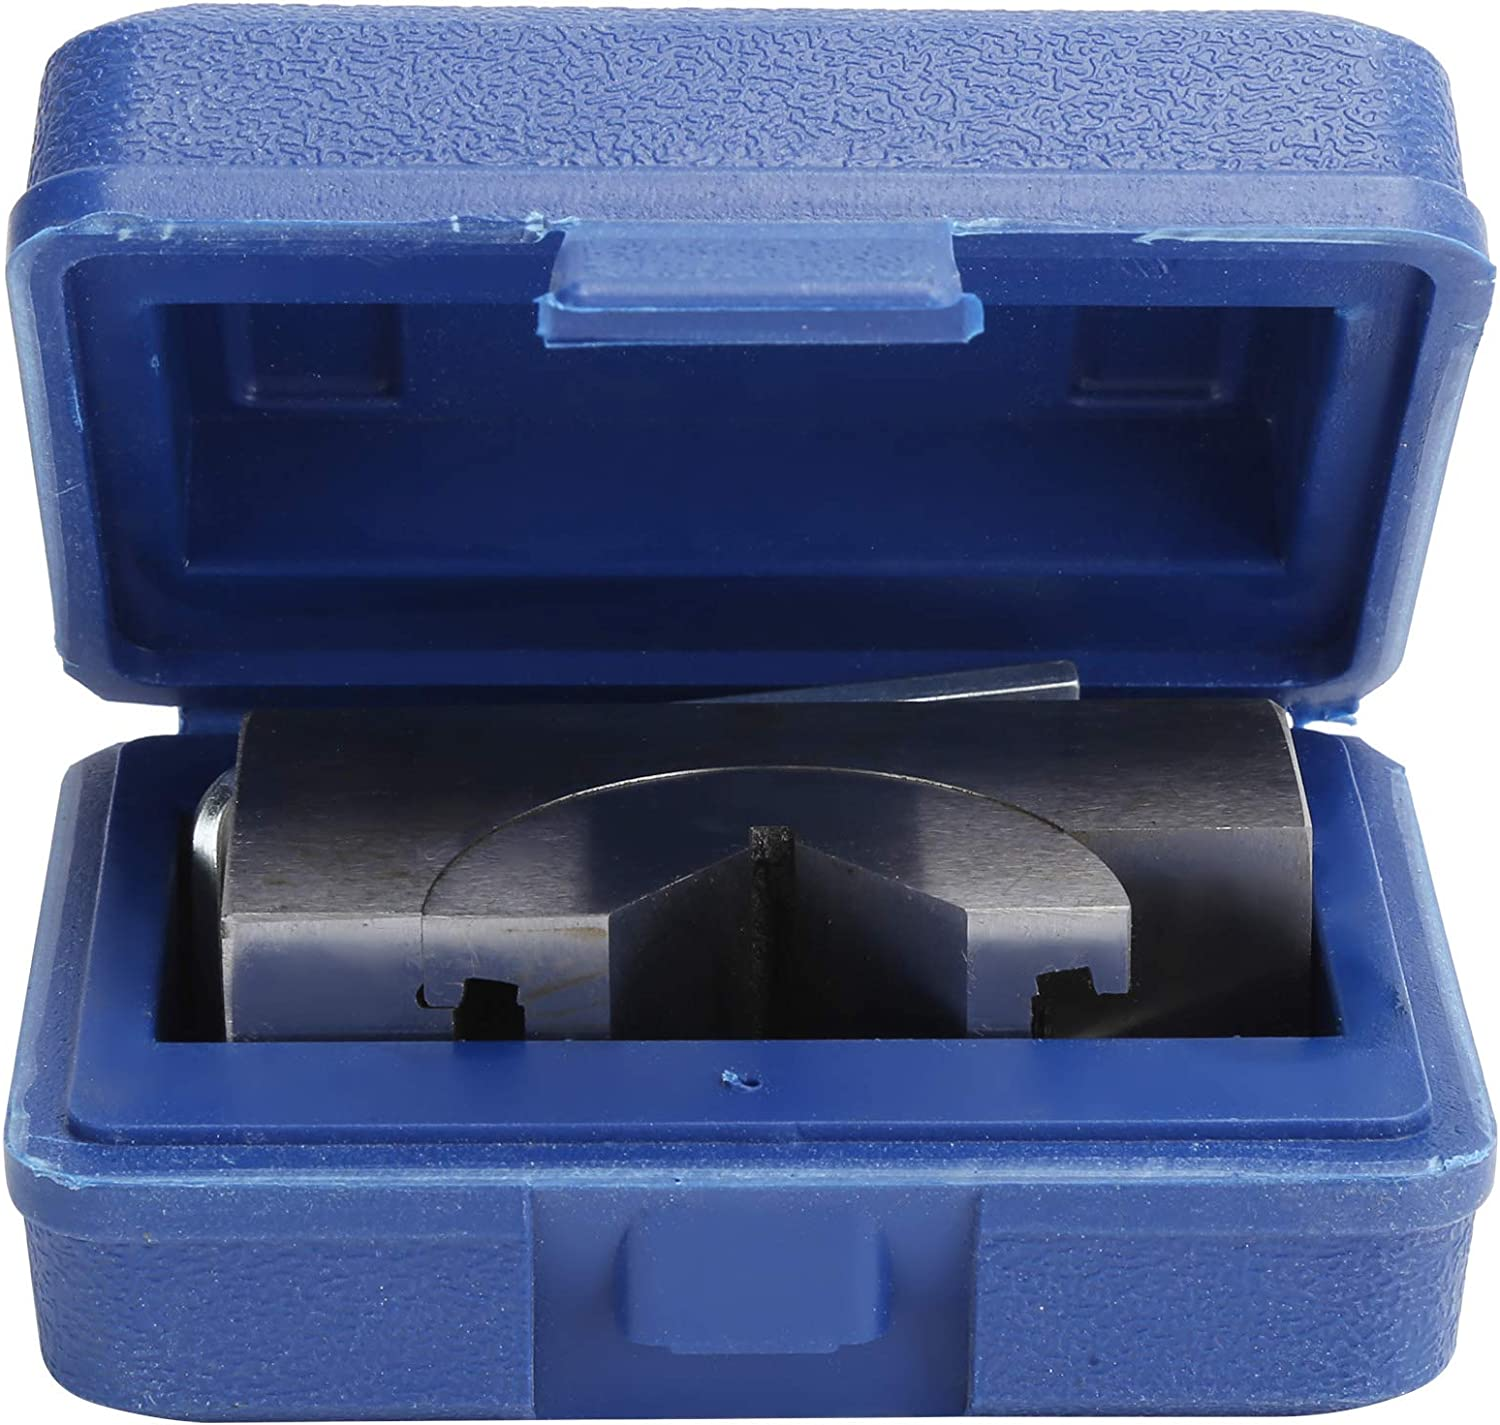 Rosvola Micro Angle Gauge V Opening large release sale Replaceme In stock Accuracy High Block